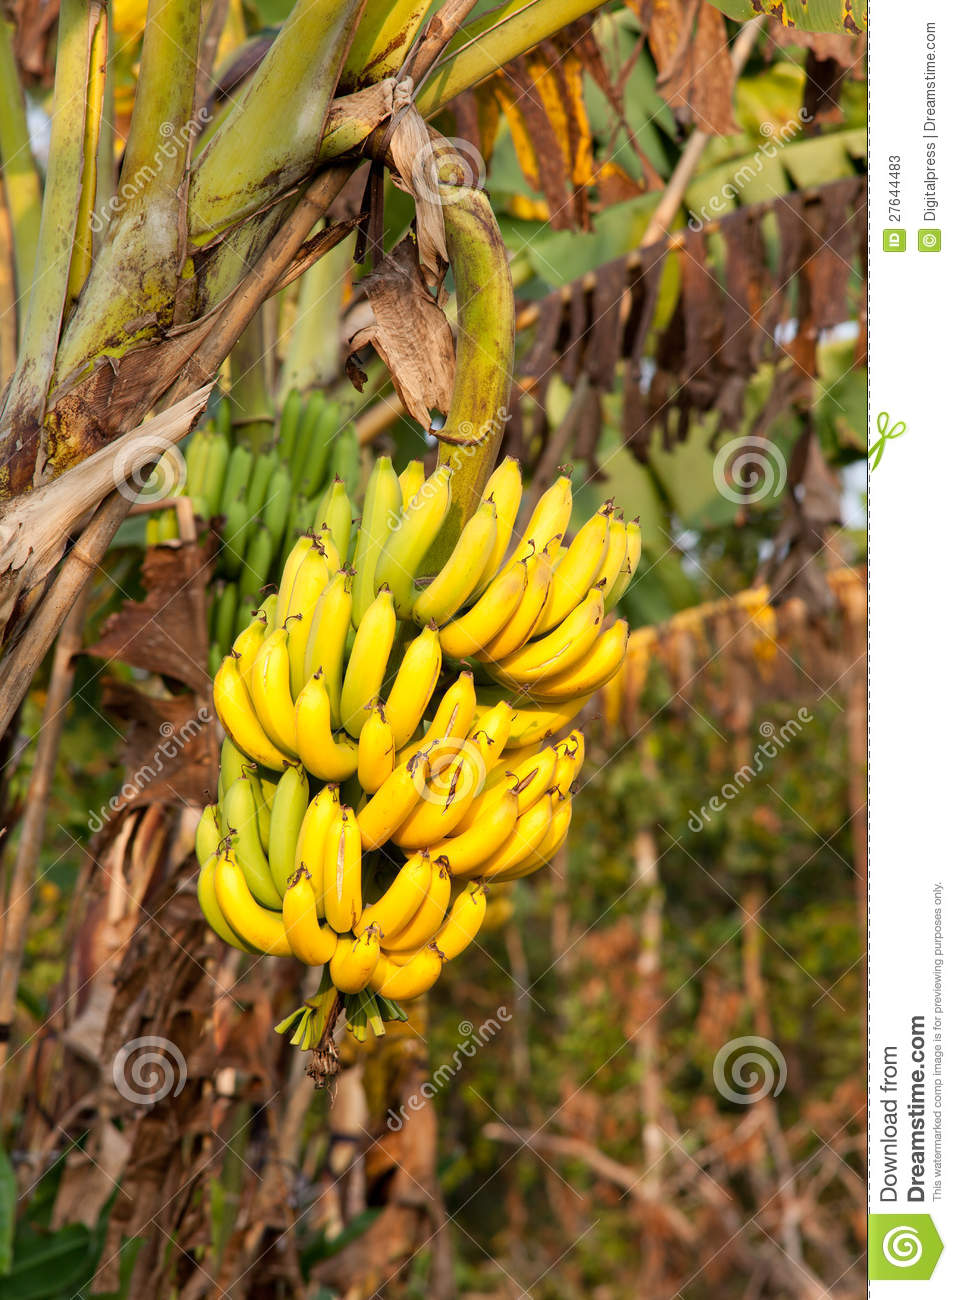 Dreamstime Images Banana Tree Stock Photos Image 27644483